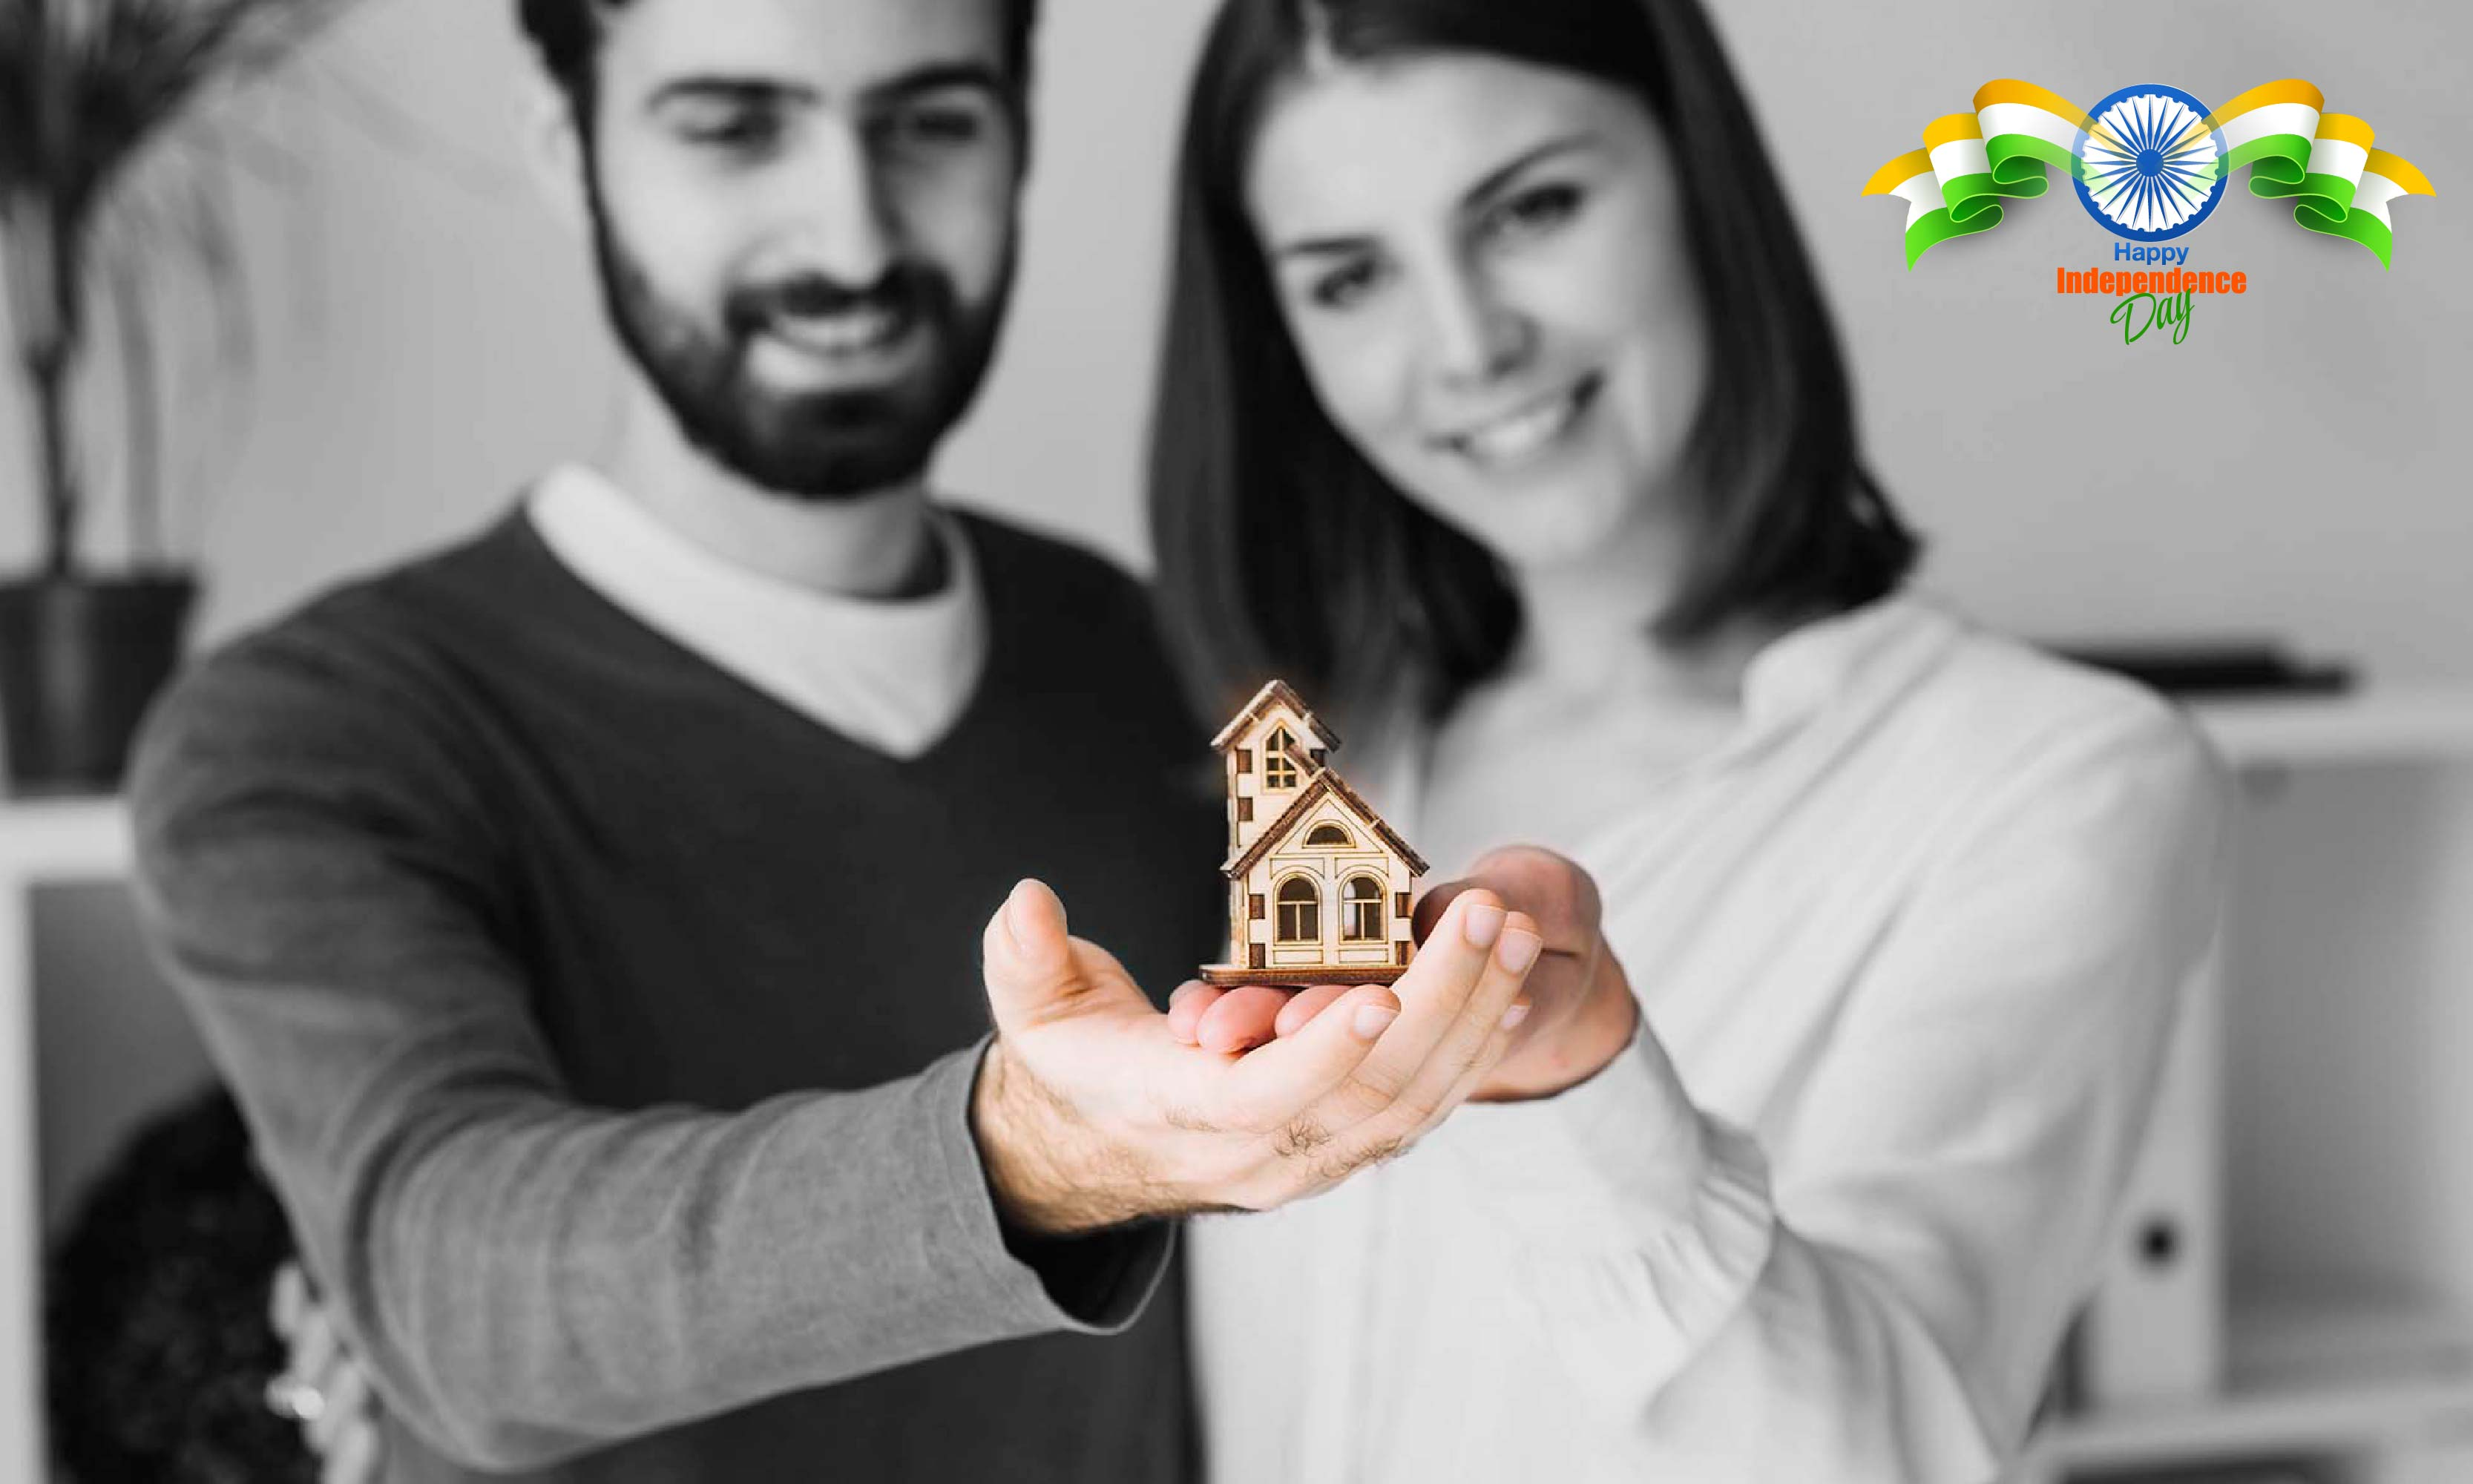 Independence of Jointly Applying for a Home Loan